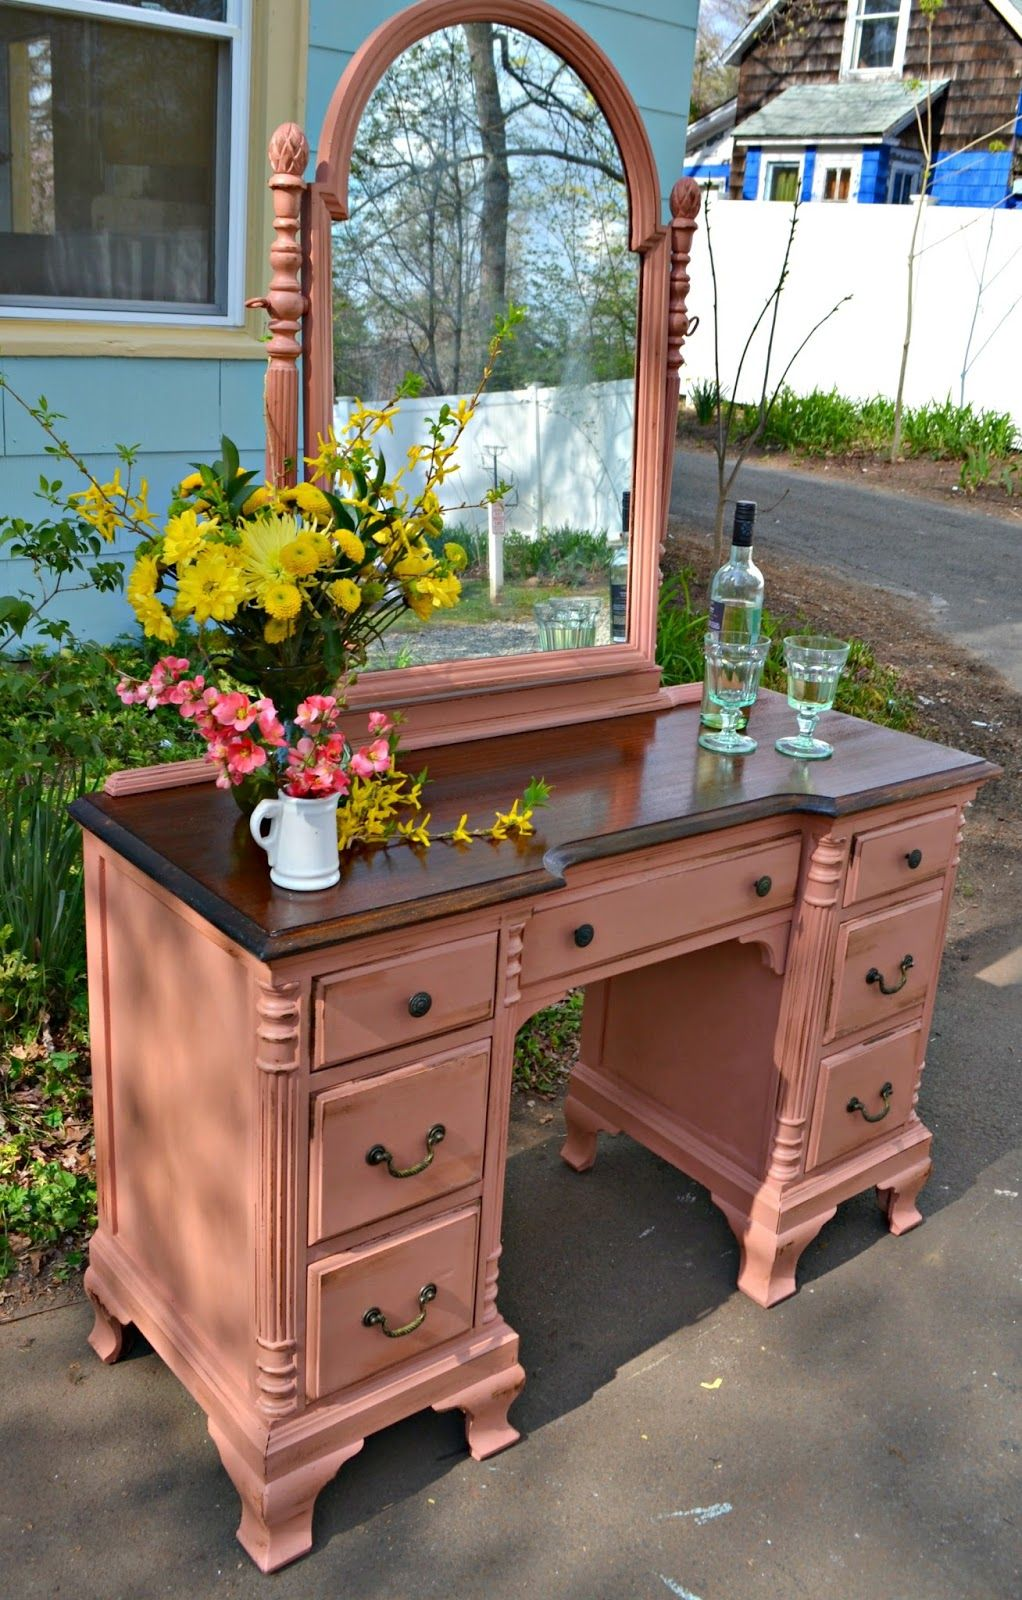 Heir and Space: An Antique Mahogany Vanity in Rose - Heir And Space: An Antique Mahogany Vanity In Rose Ash Projects